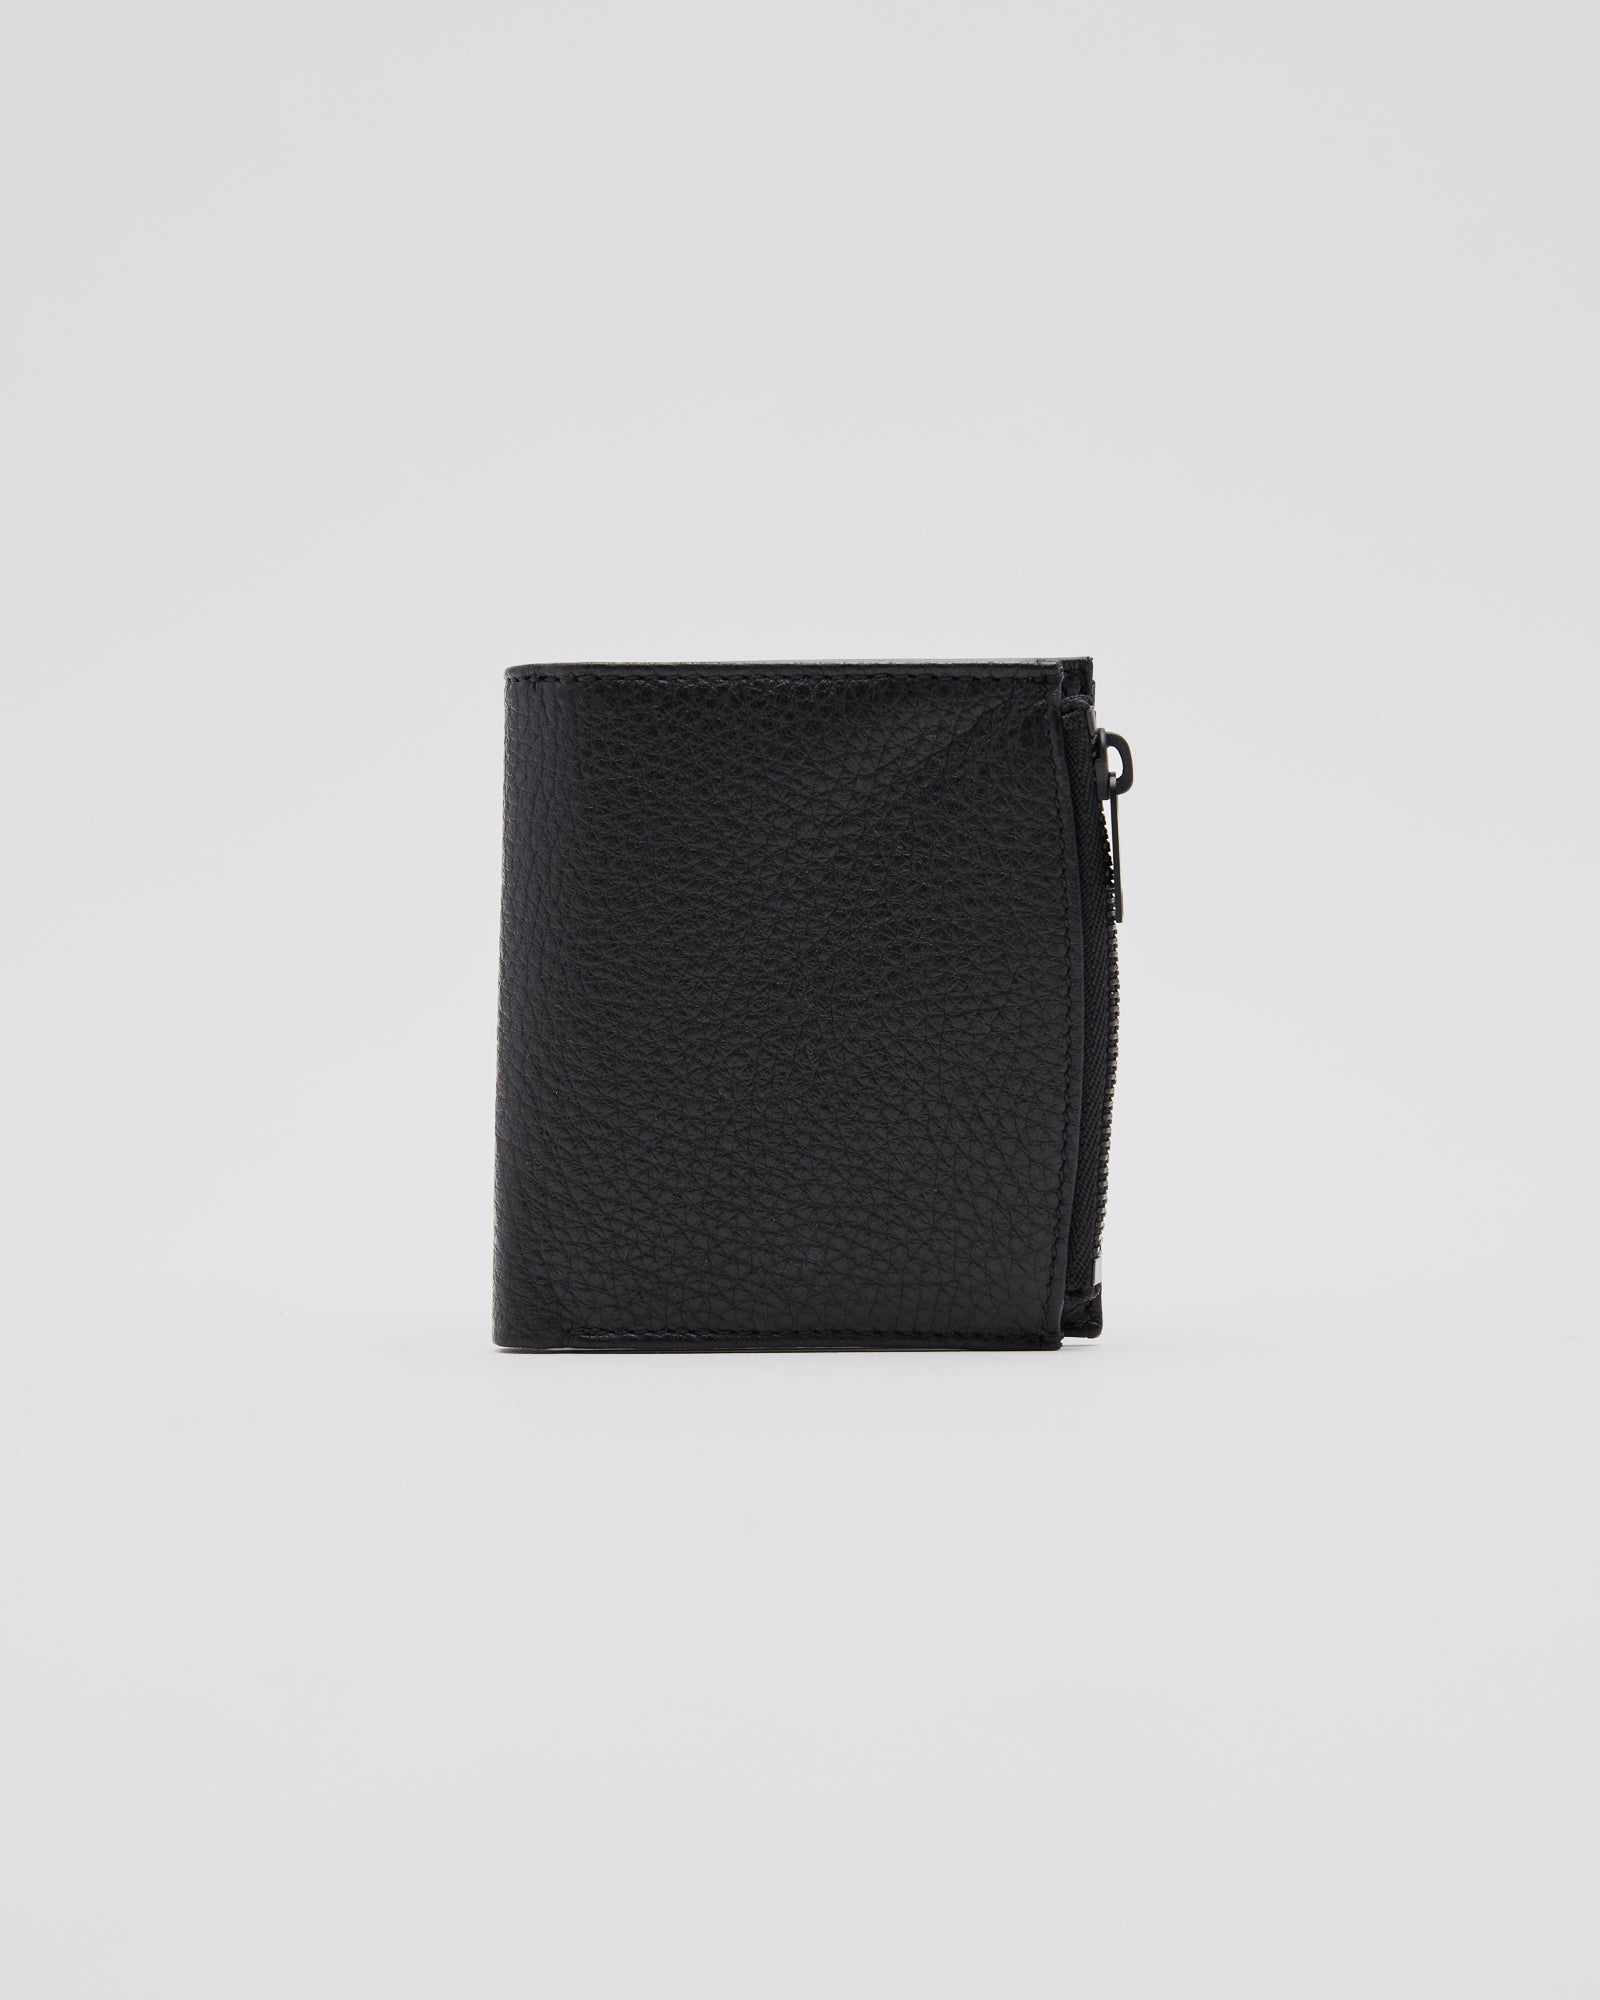 Stitch Wallet in Black